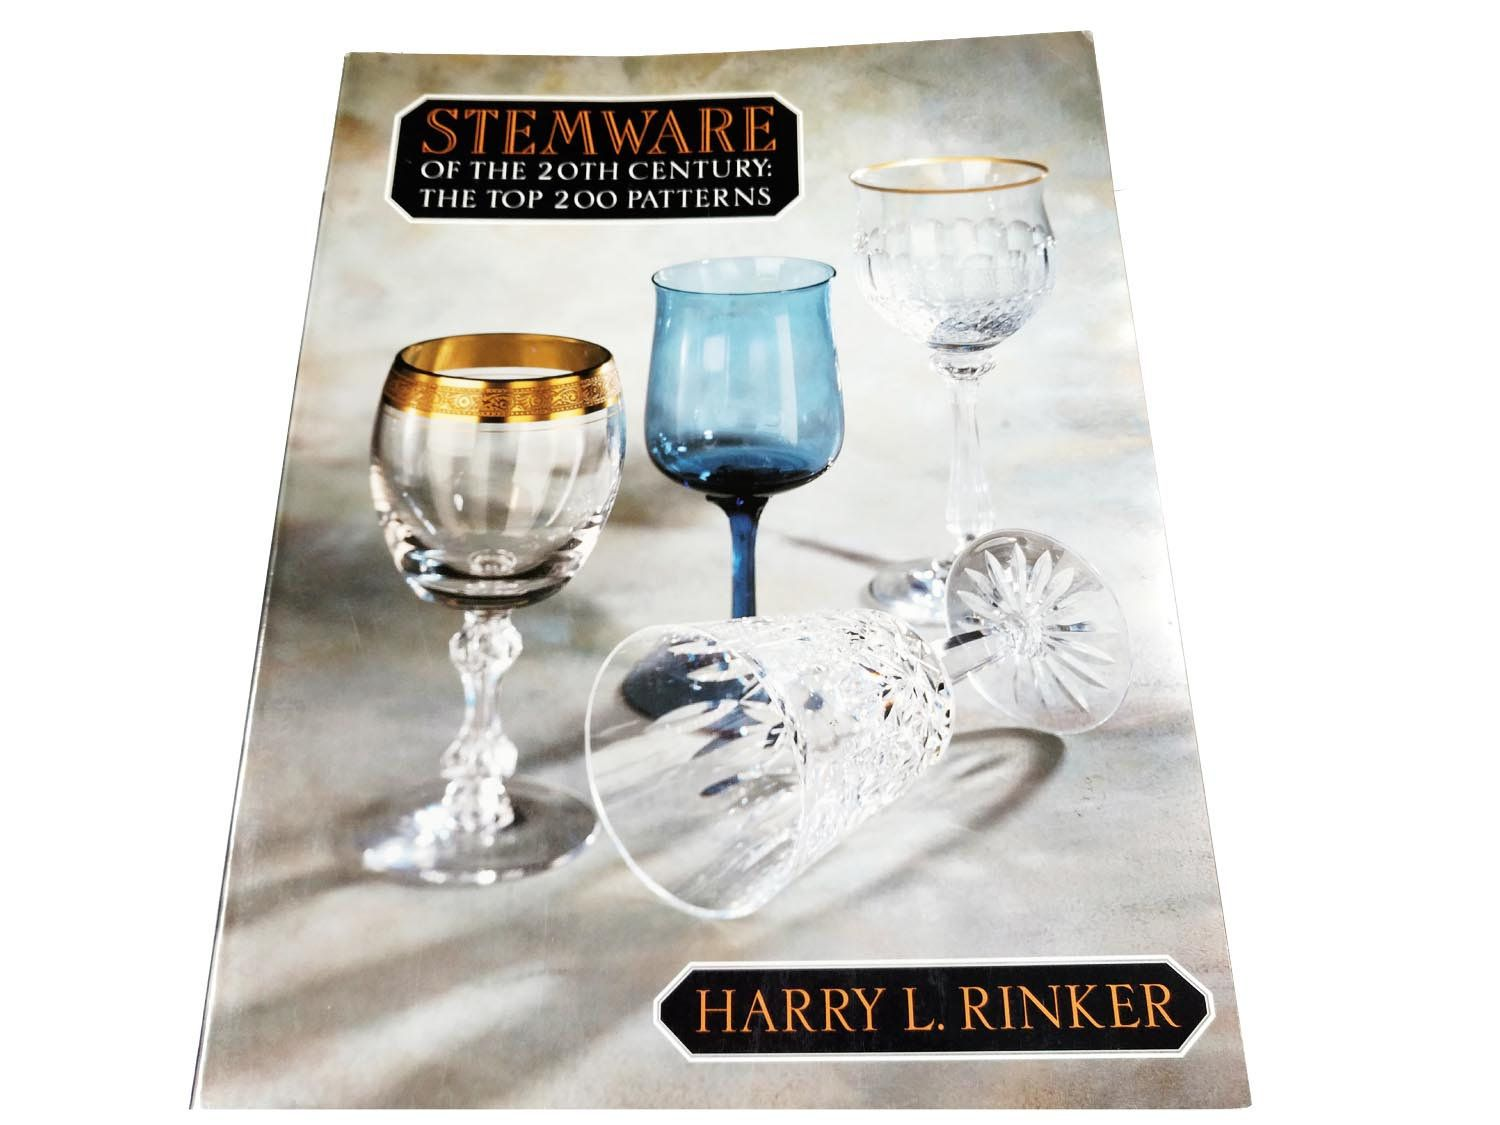 High End Crystal Wine Glasses Stemware Of 20th Century Harry Rinker Stemware Identification